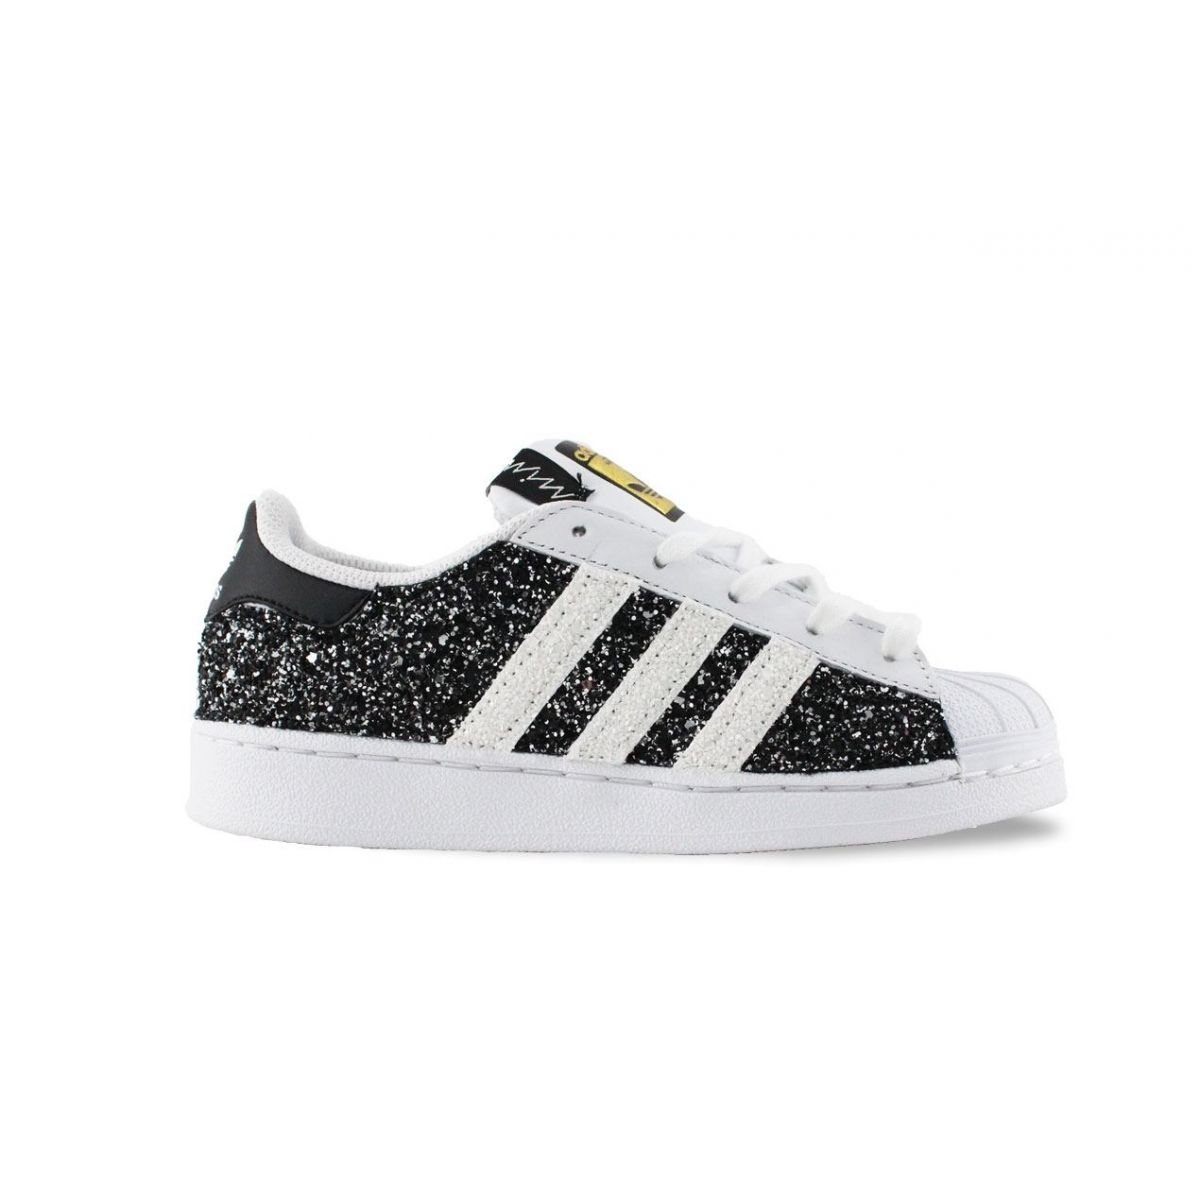 purchase superstar adidas bimba 13994 0a451